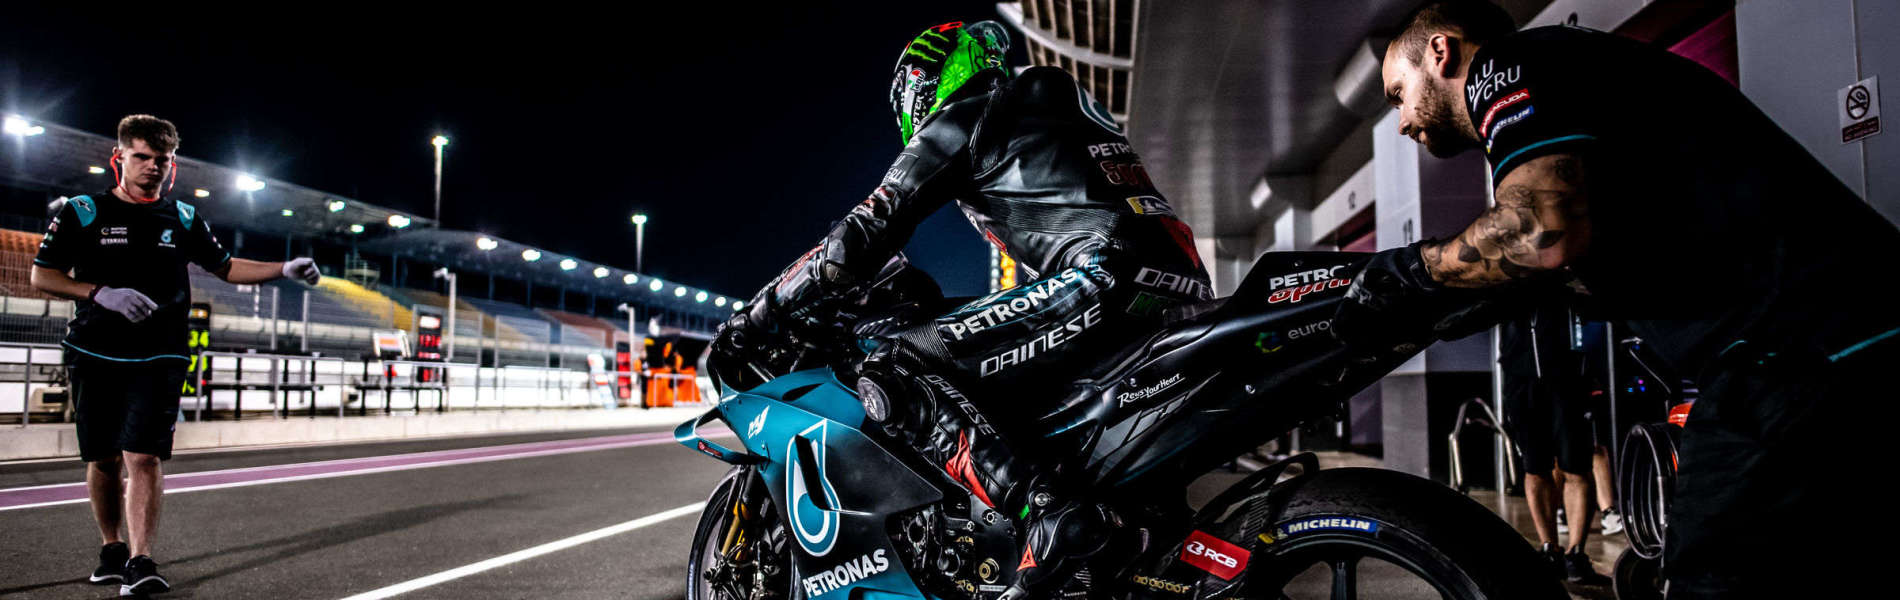 Franco Morbidelli at the 2018 GP of Qatar